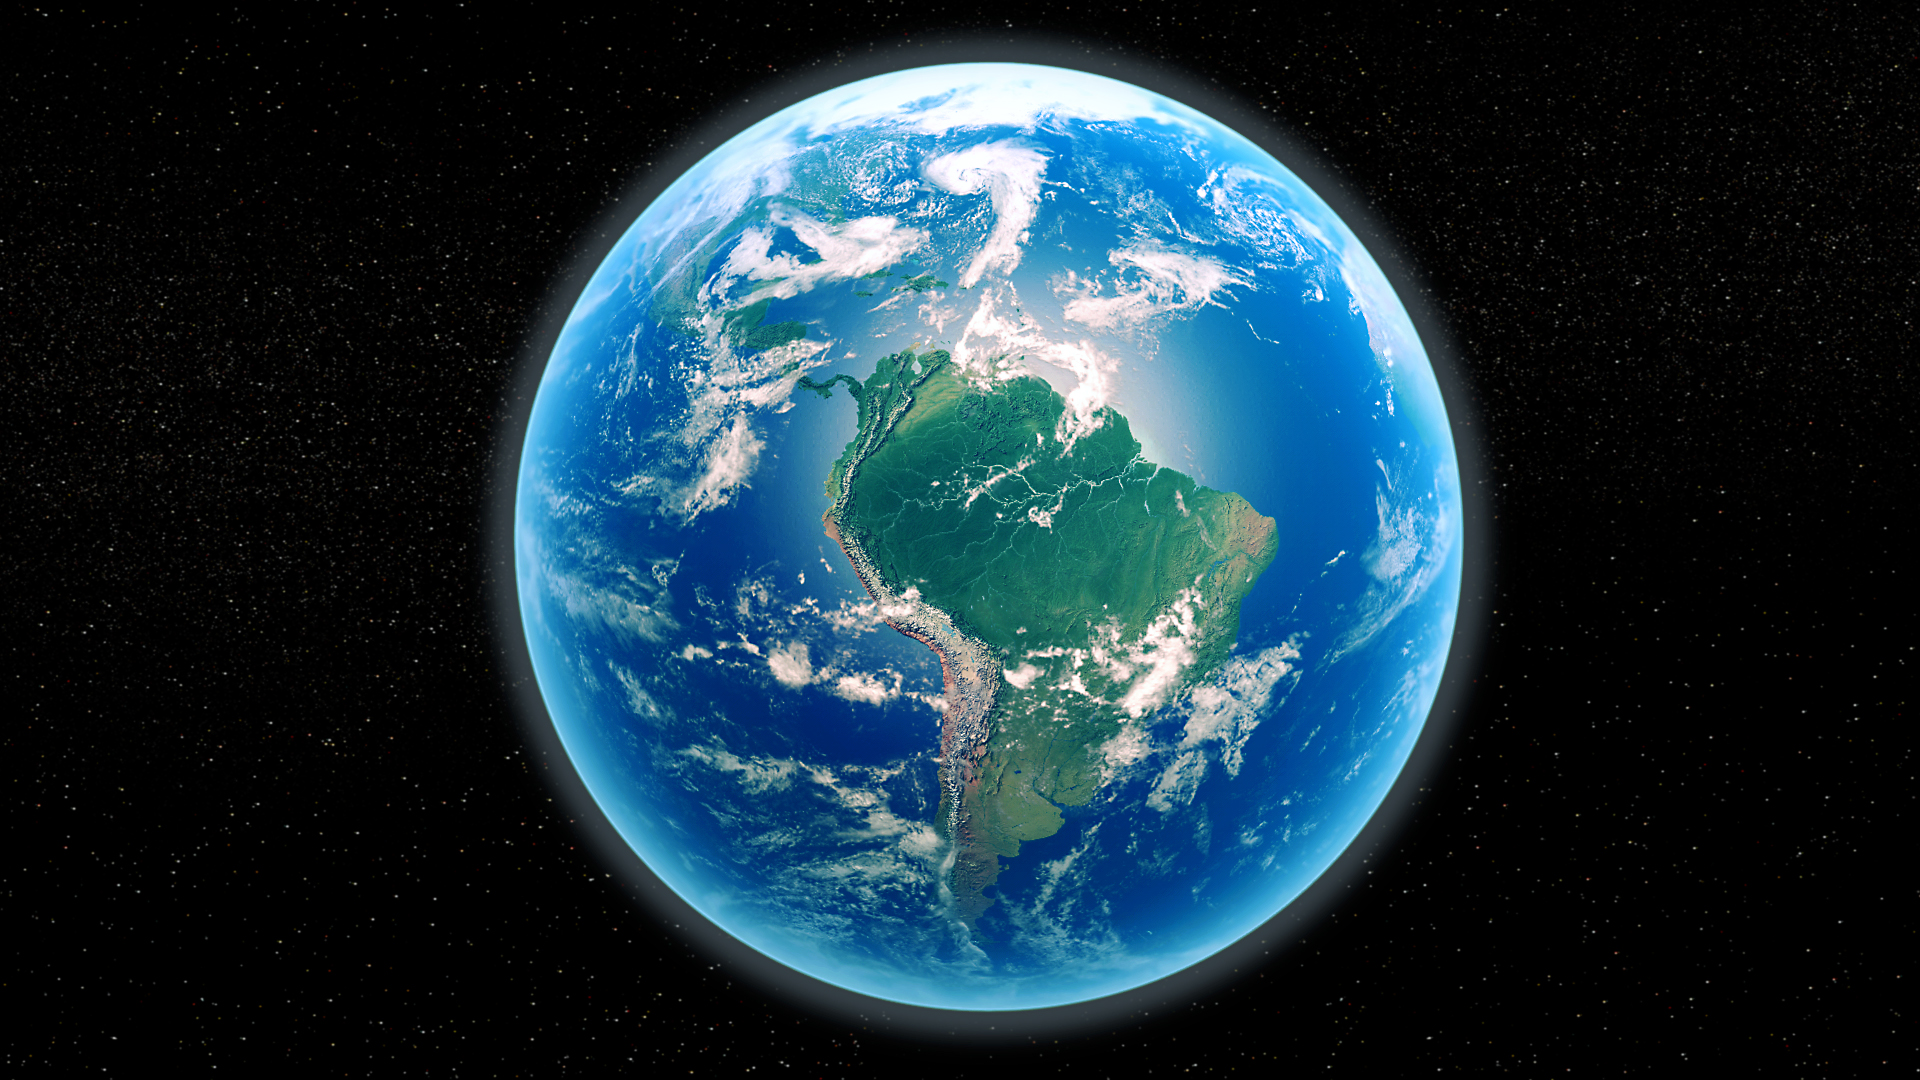 1333 words essay on our mother earth